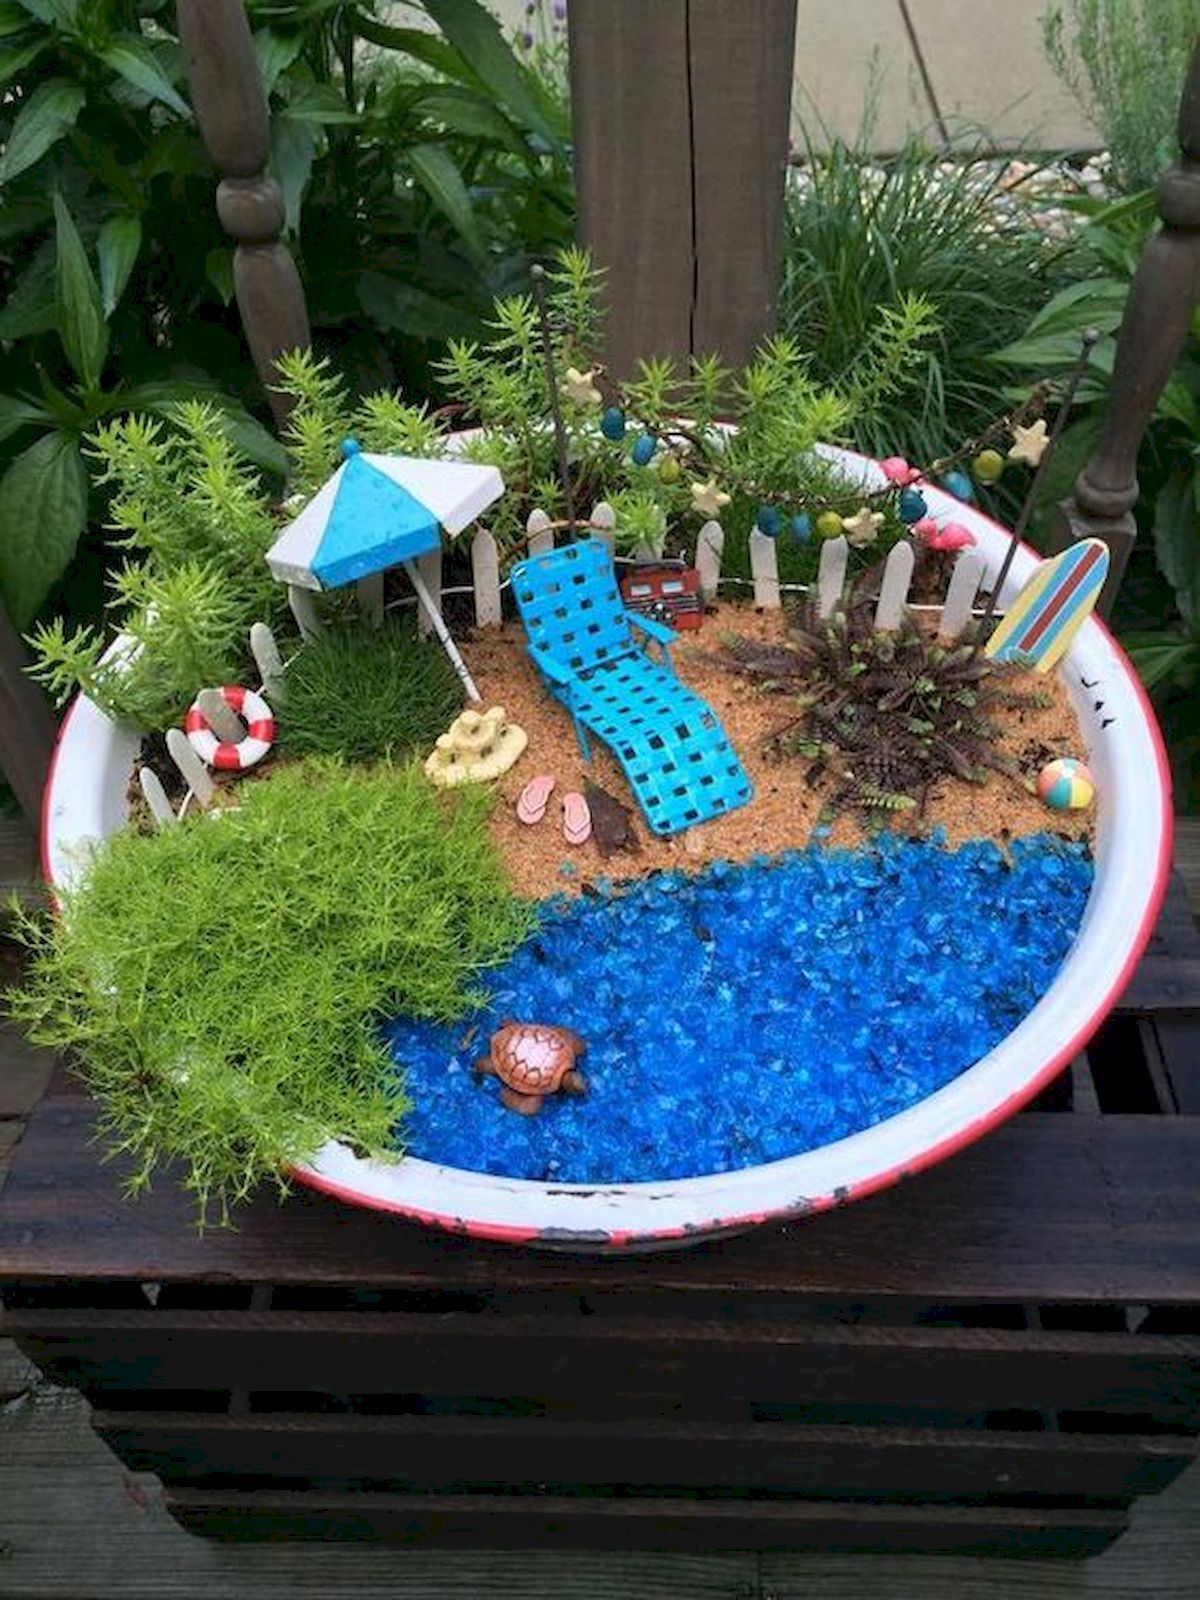 Cool 27 Beautiful And Easy Fairy Garden Ideas For Kids Https Coachdecor Com 27 Beautiful And Easy Fai Fairy Garden Decor Fairy Garden Diy Fairy Garden Plants